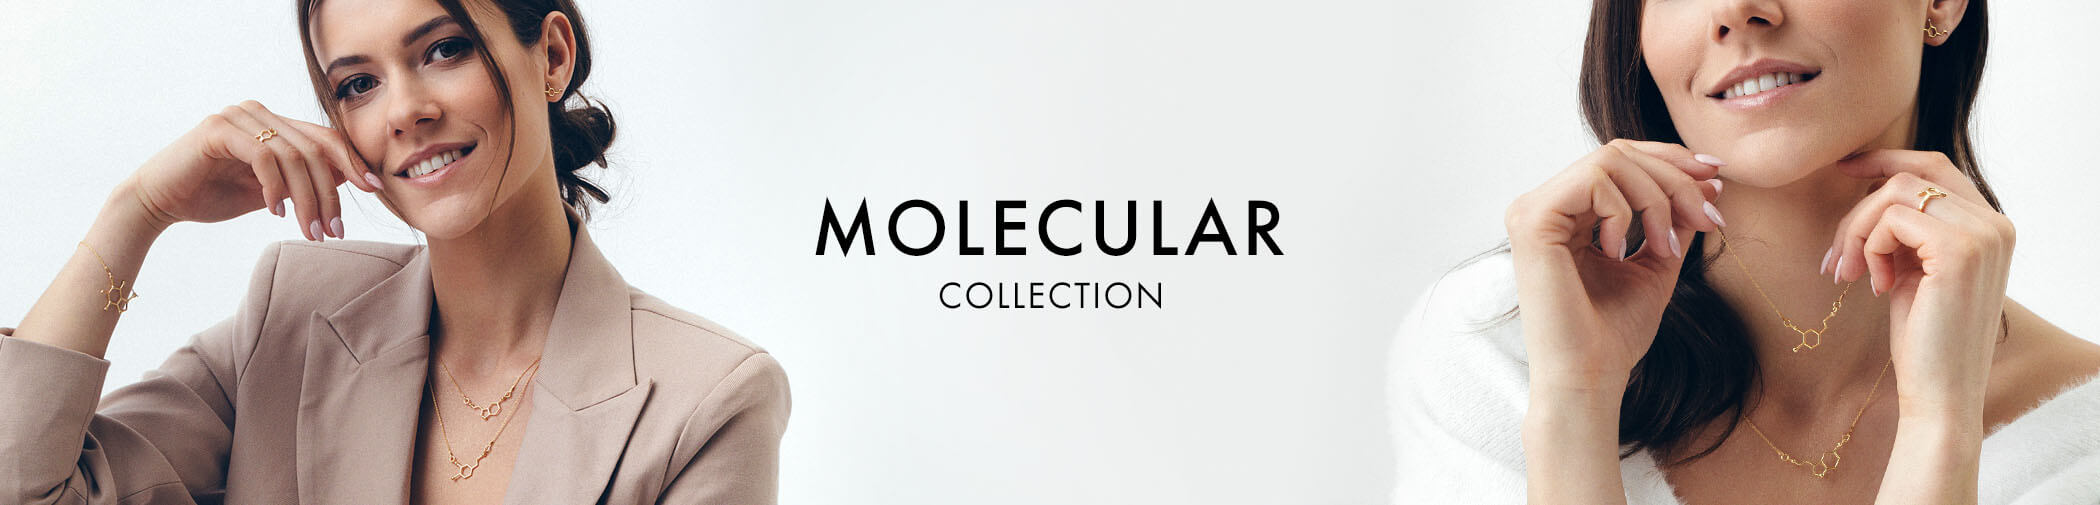 Molecular Collection